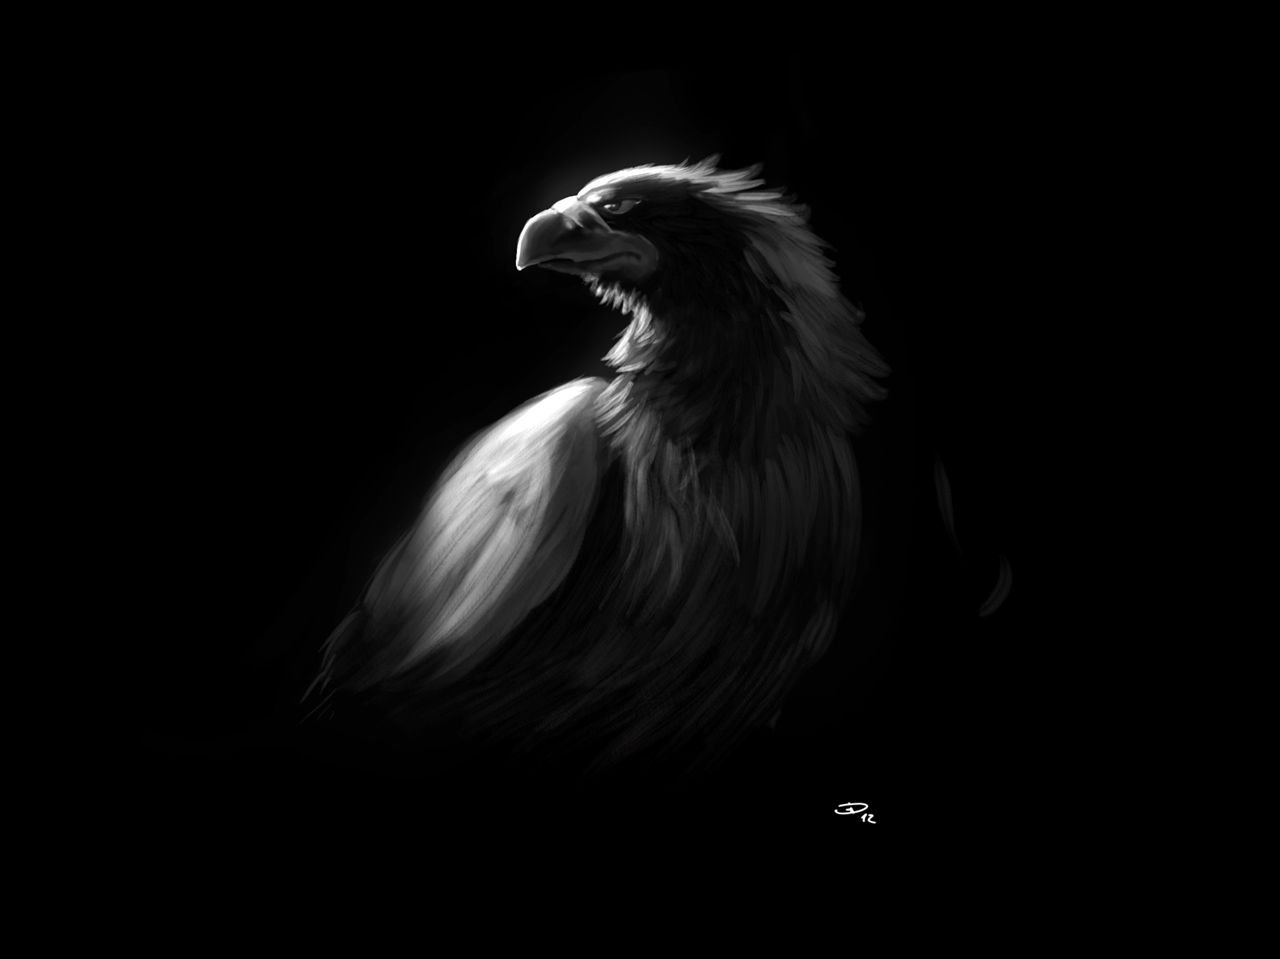 Black Eagle Wallpapers Top Free Black Eagle Backgrounds Wallpaperaccess